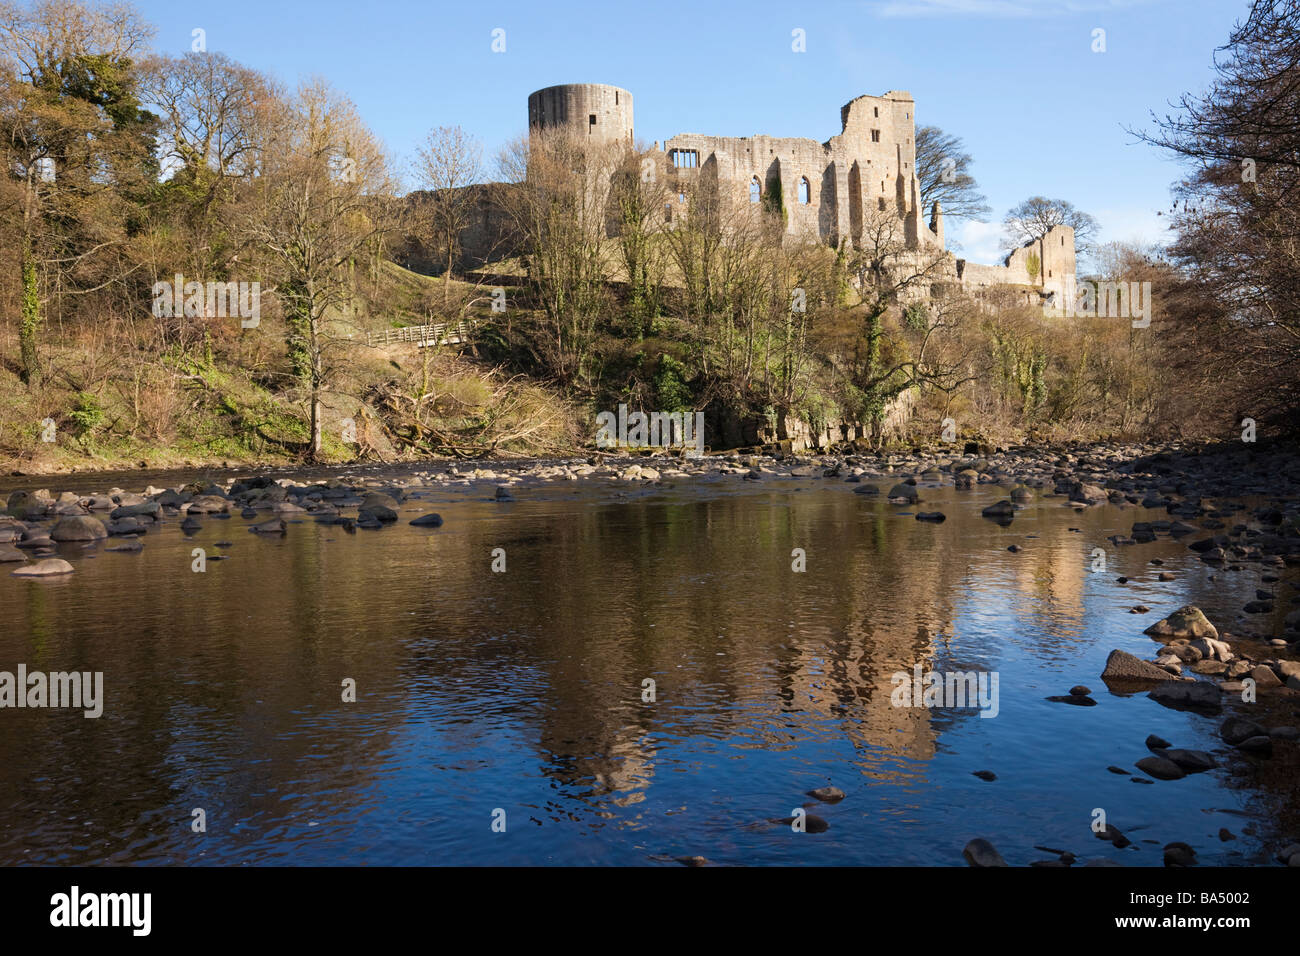 Barnard Castle Teesdale County Durham England UK Castle ruins reflected in River Tees - Stock Image